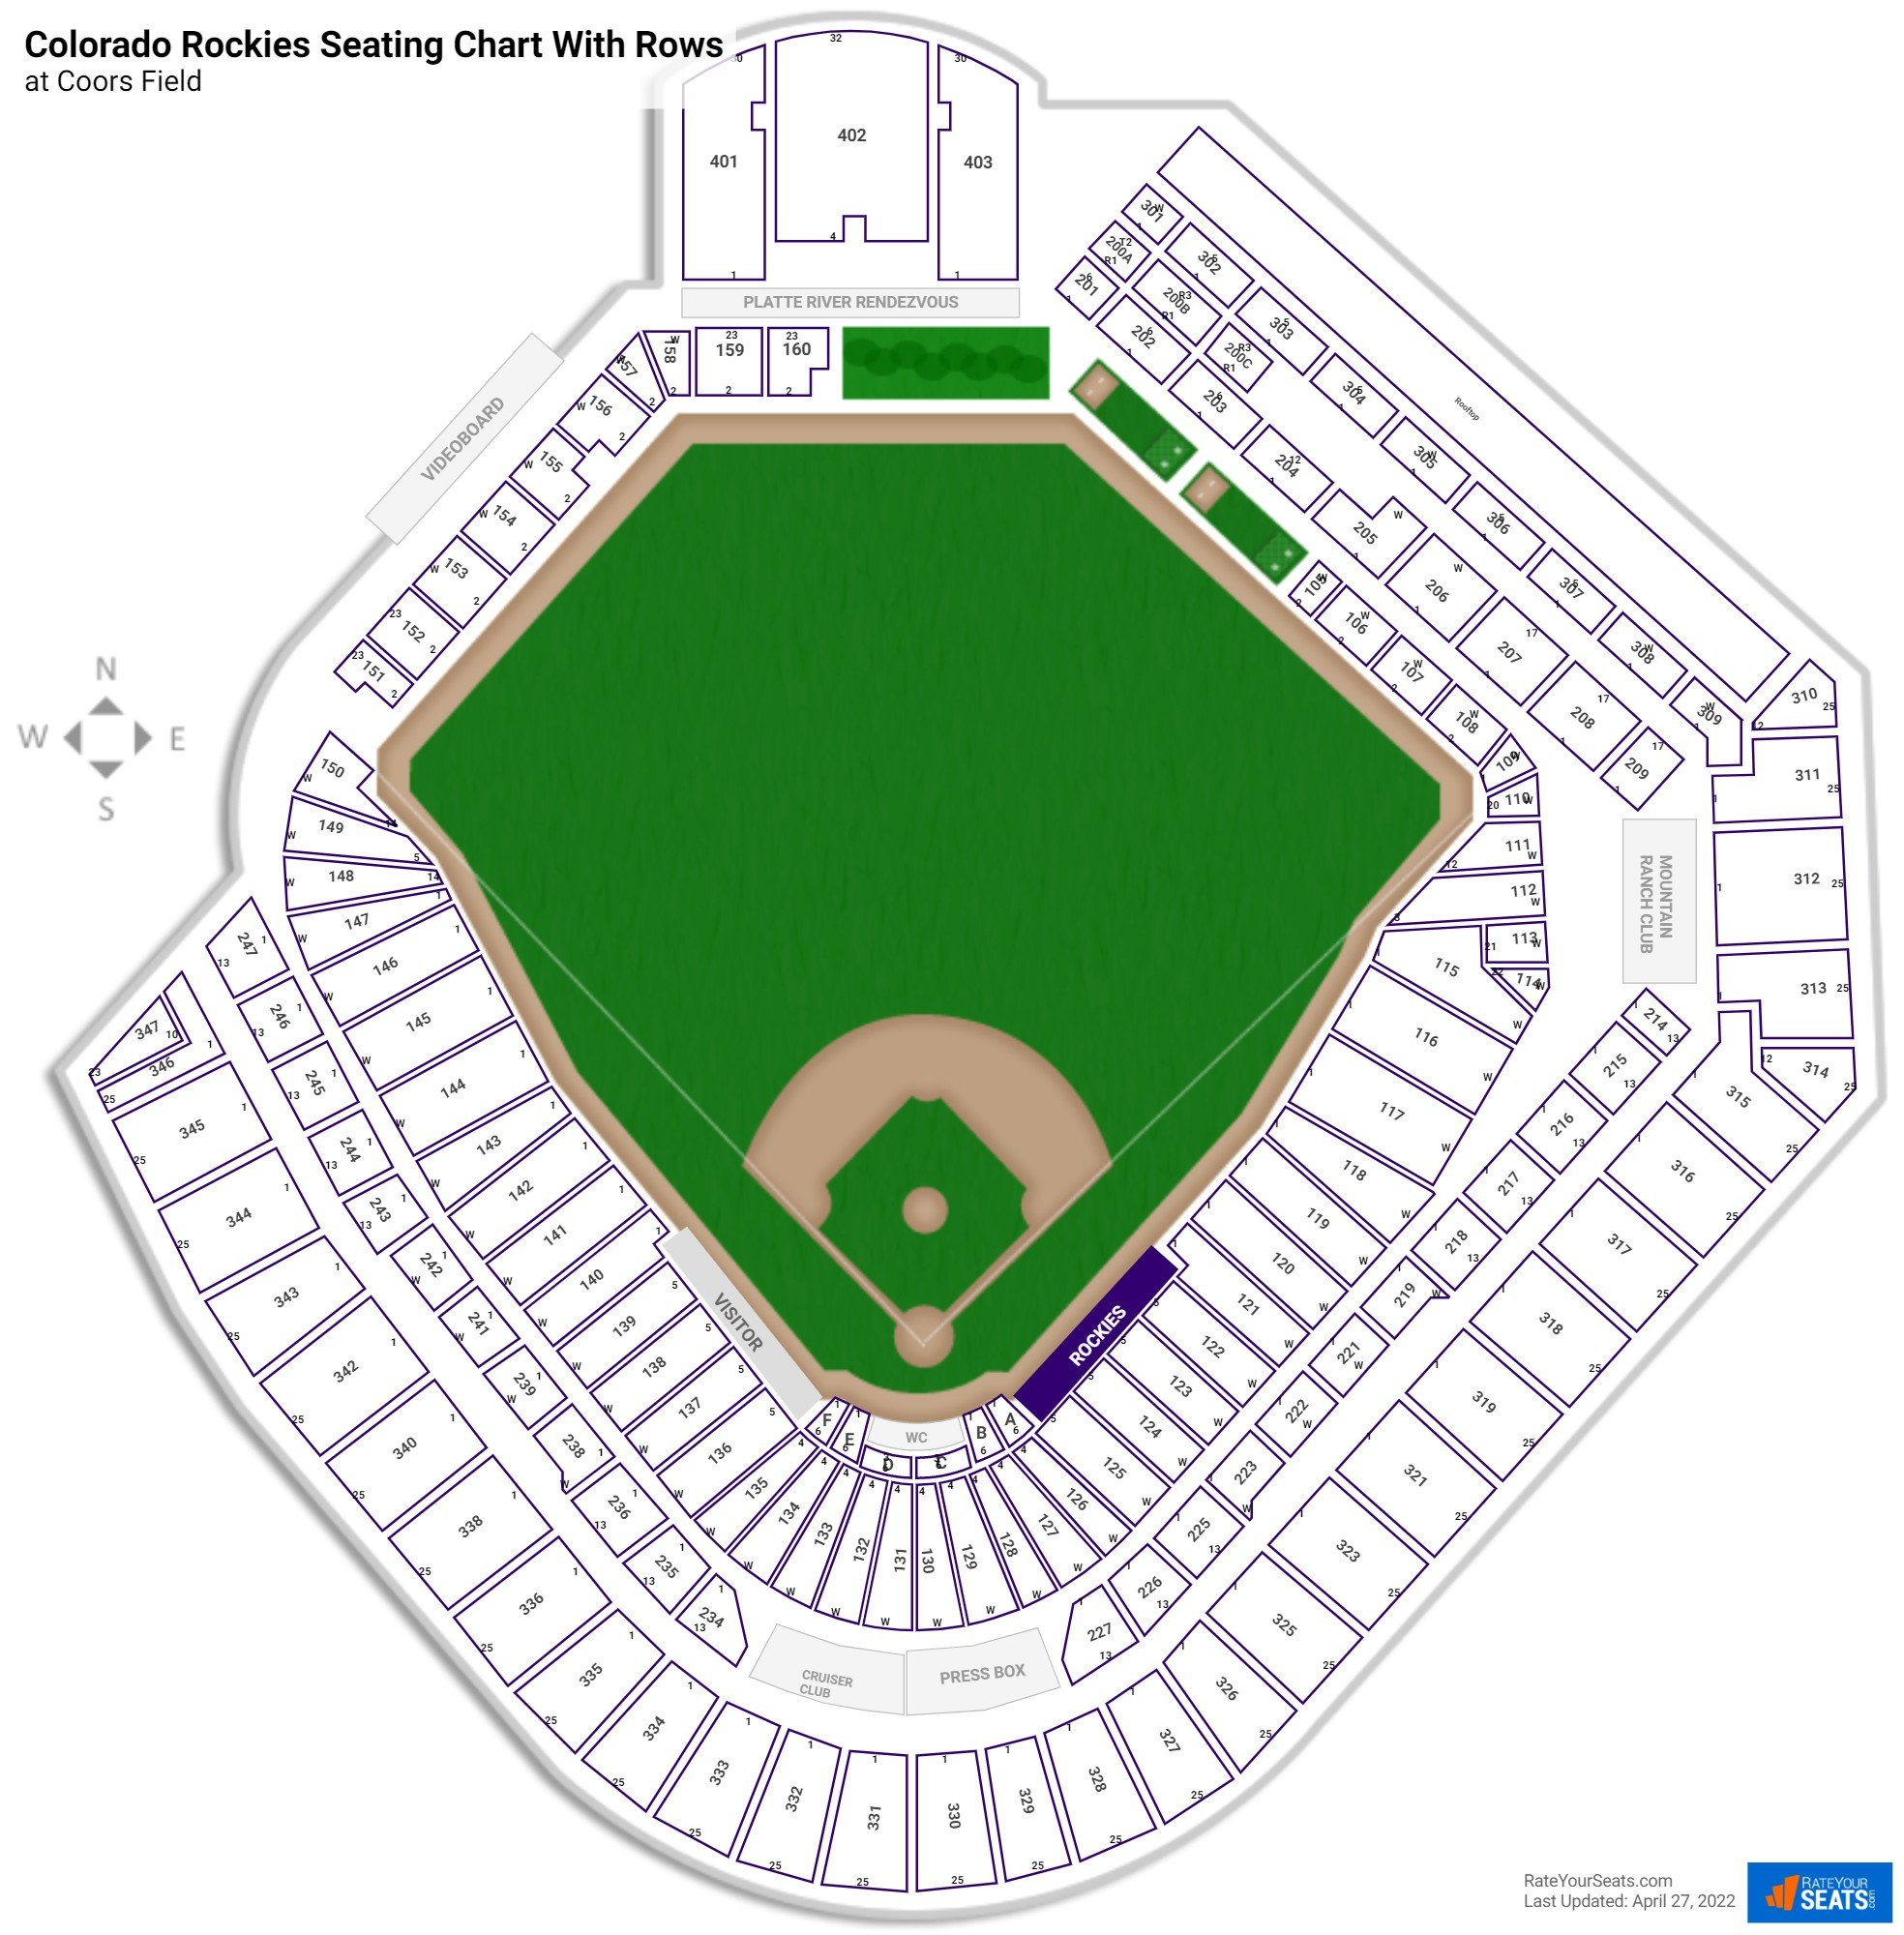 Coors Field seating chart with rows